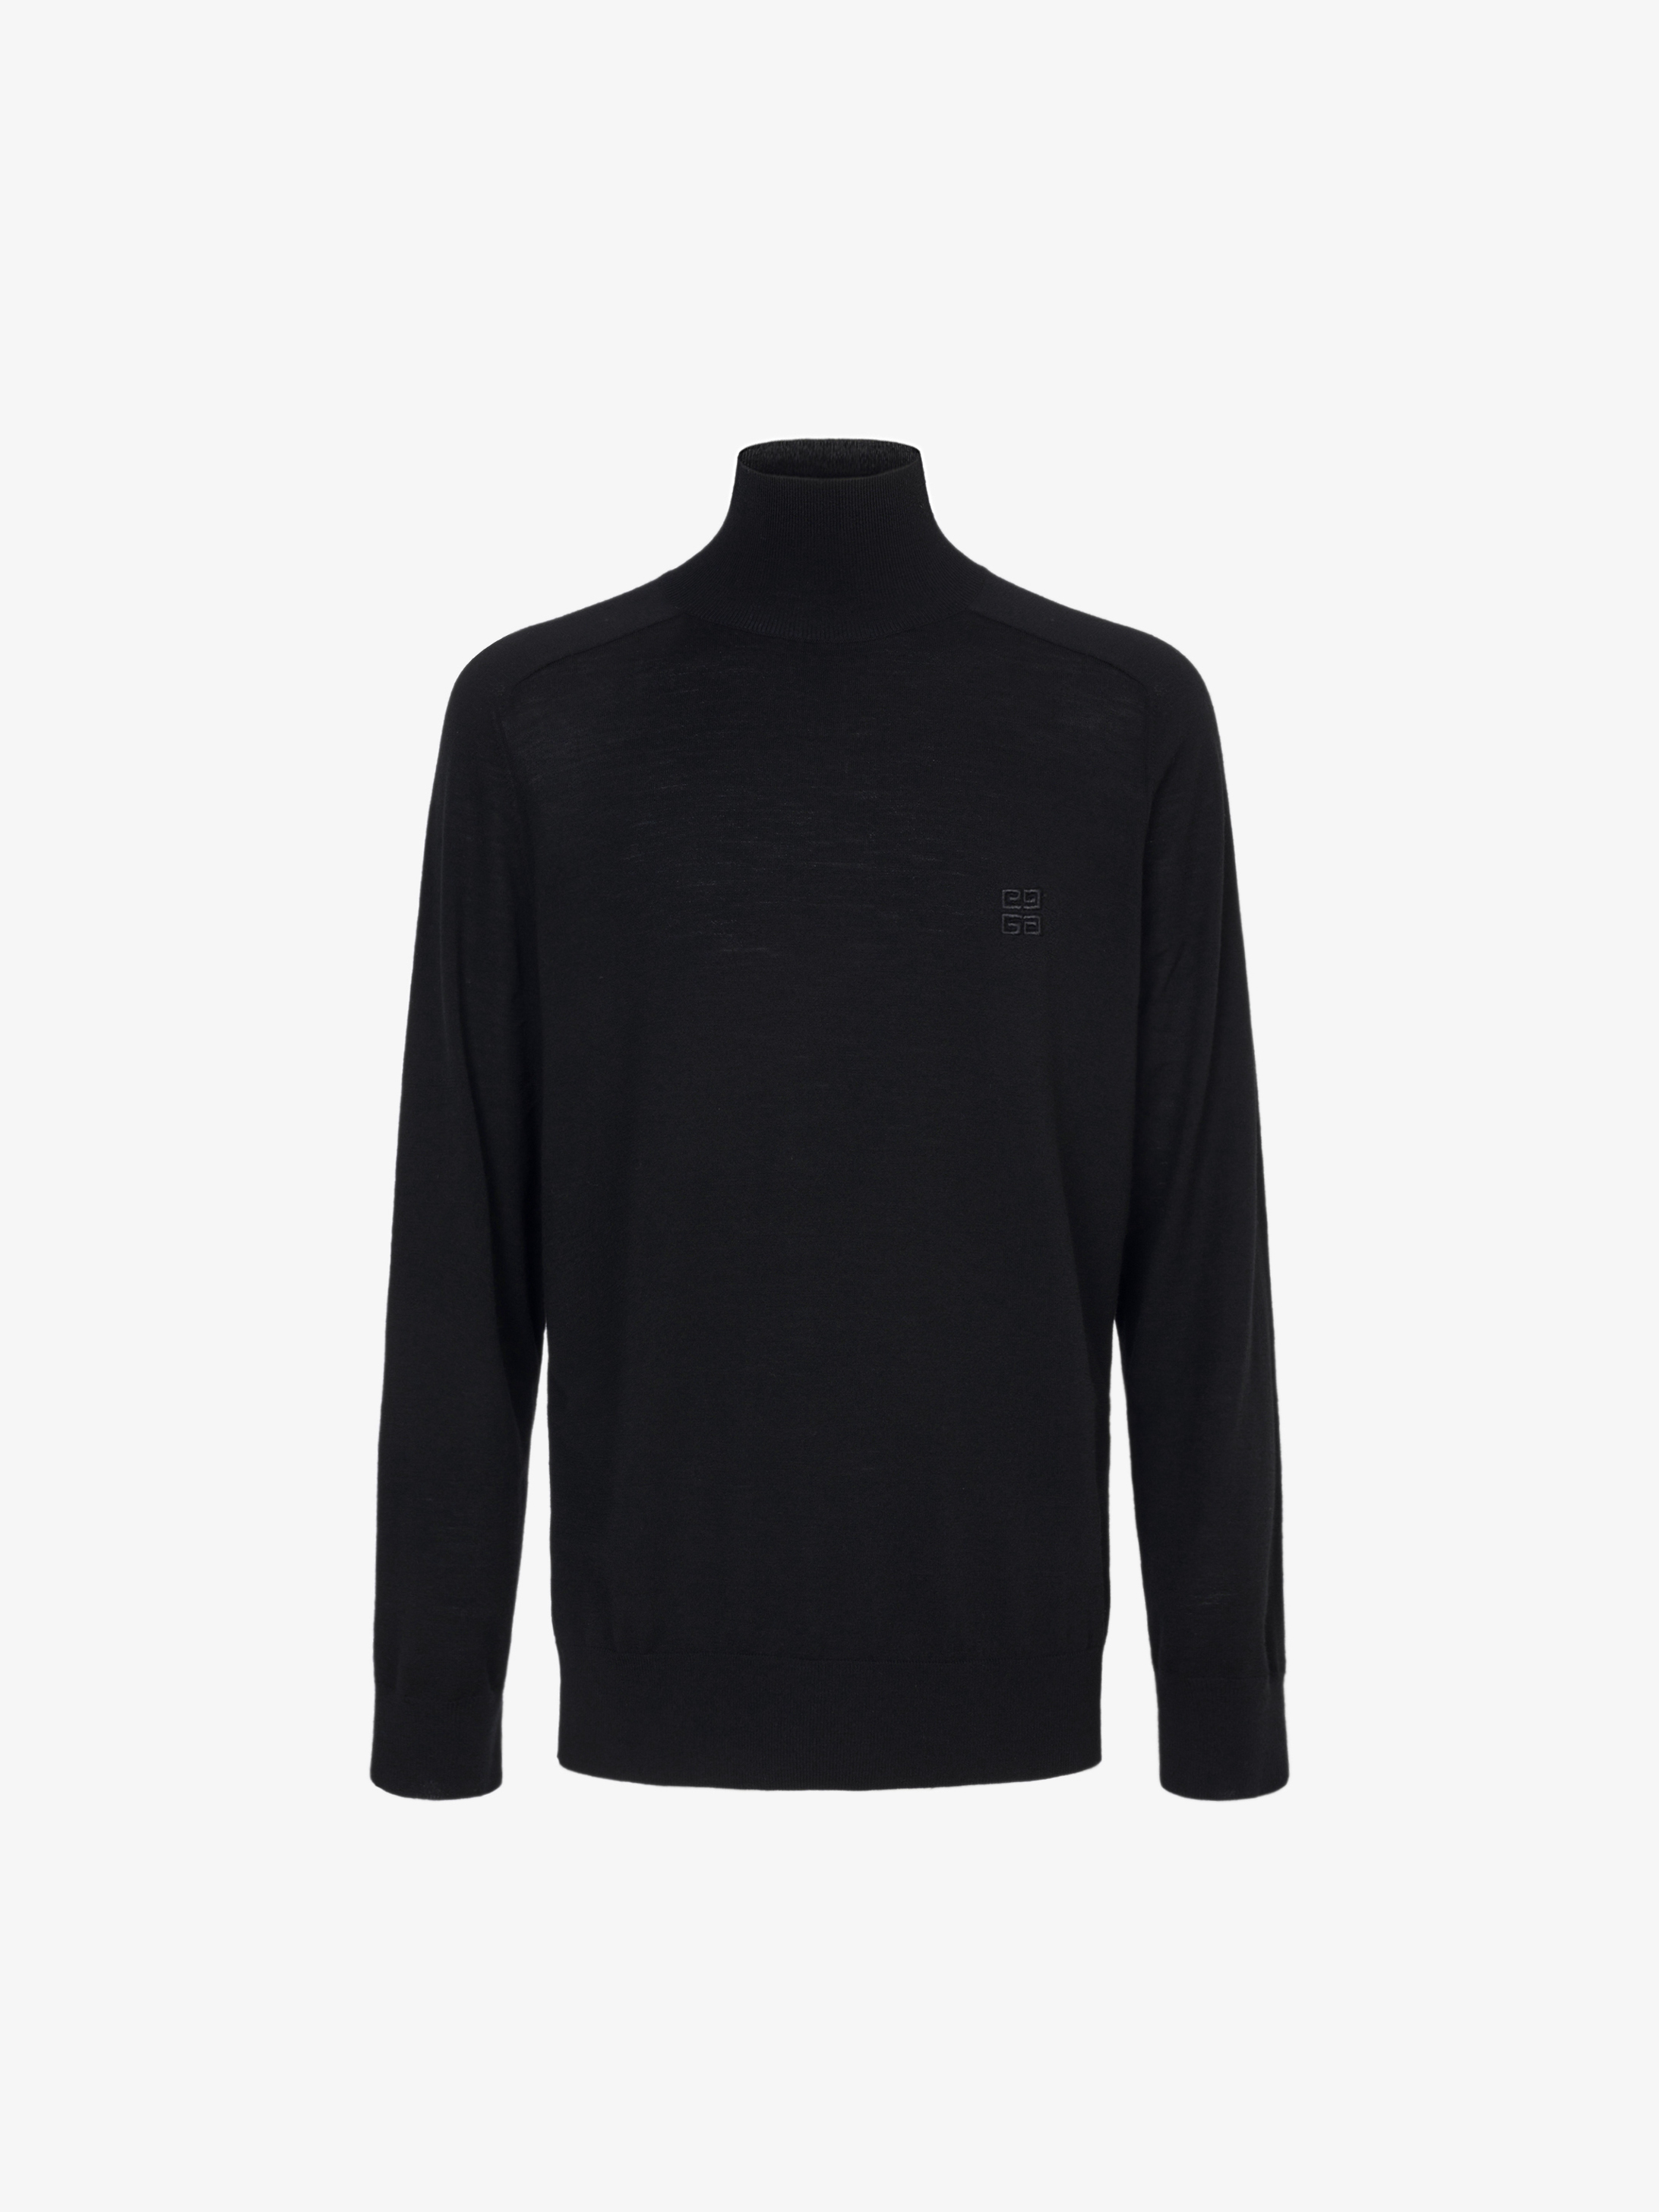 4G turtleneck sweater in wool